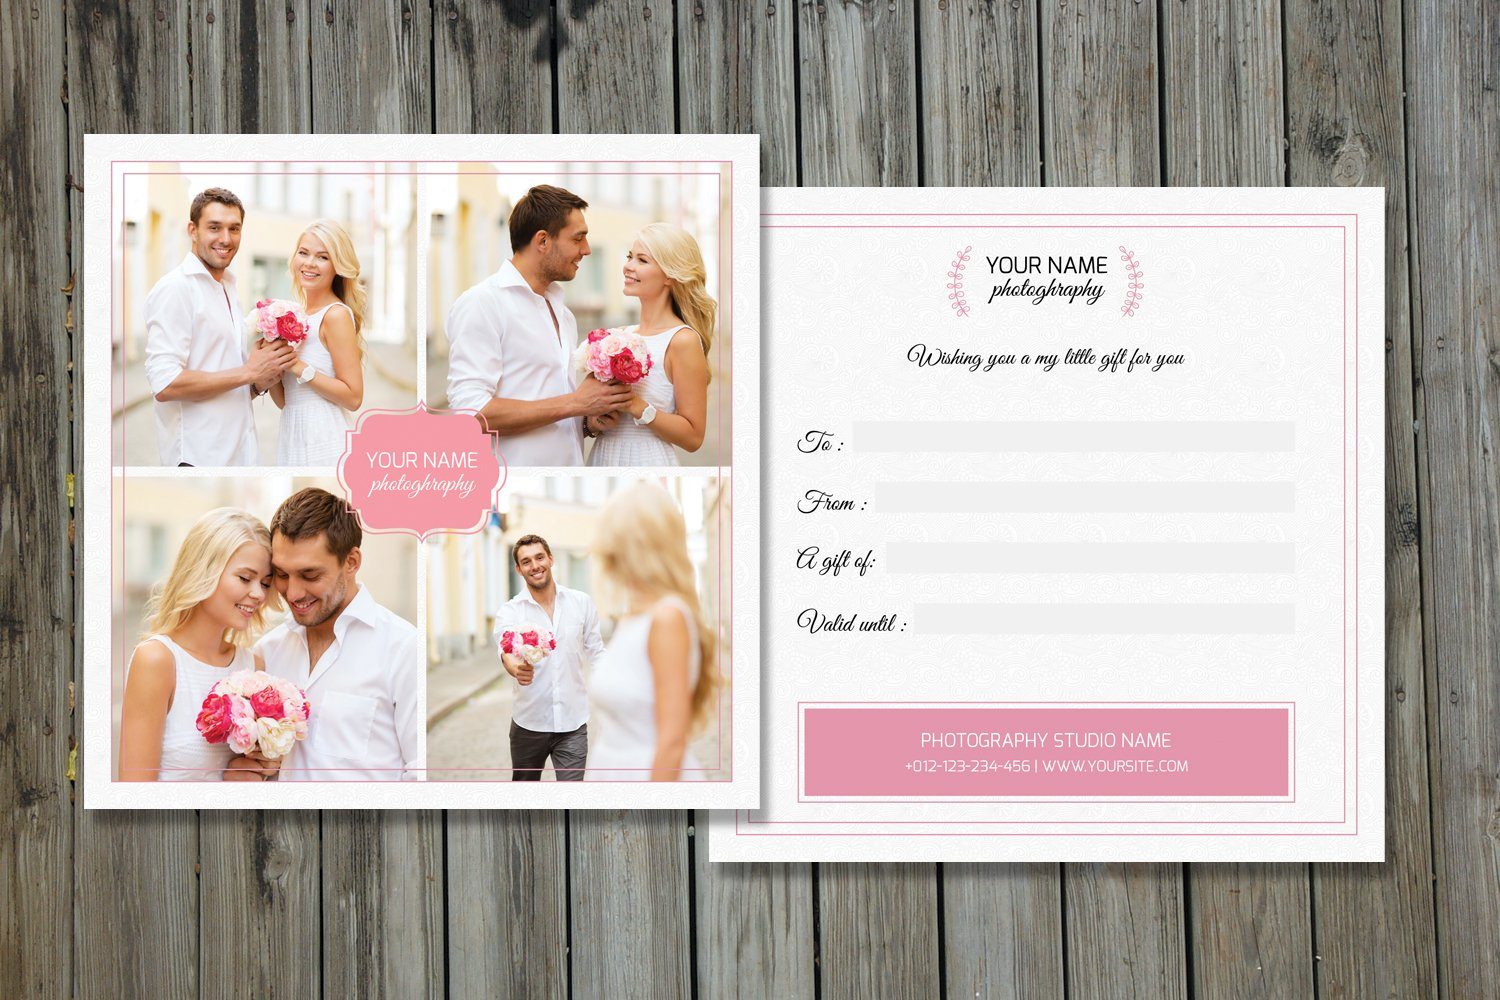 photographer gift certificate v01 card templates creative market